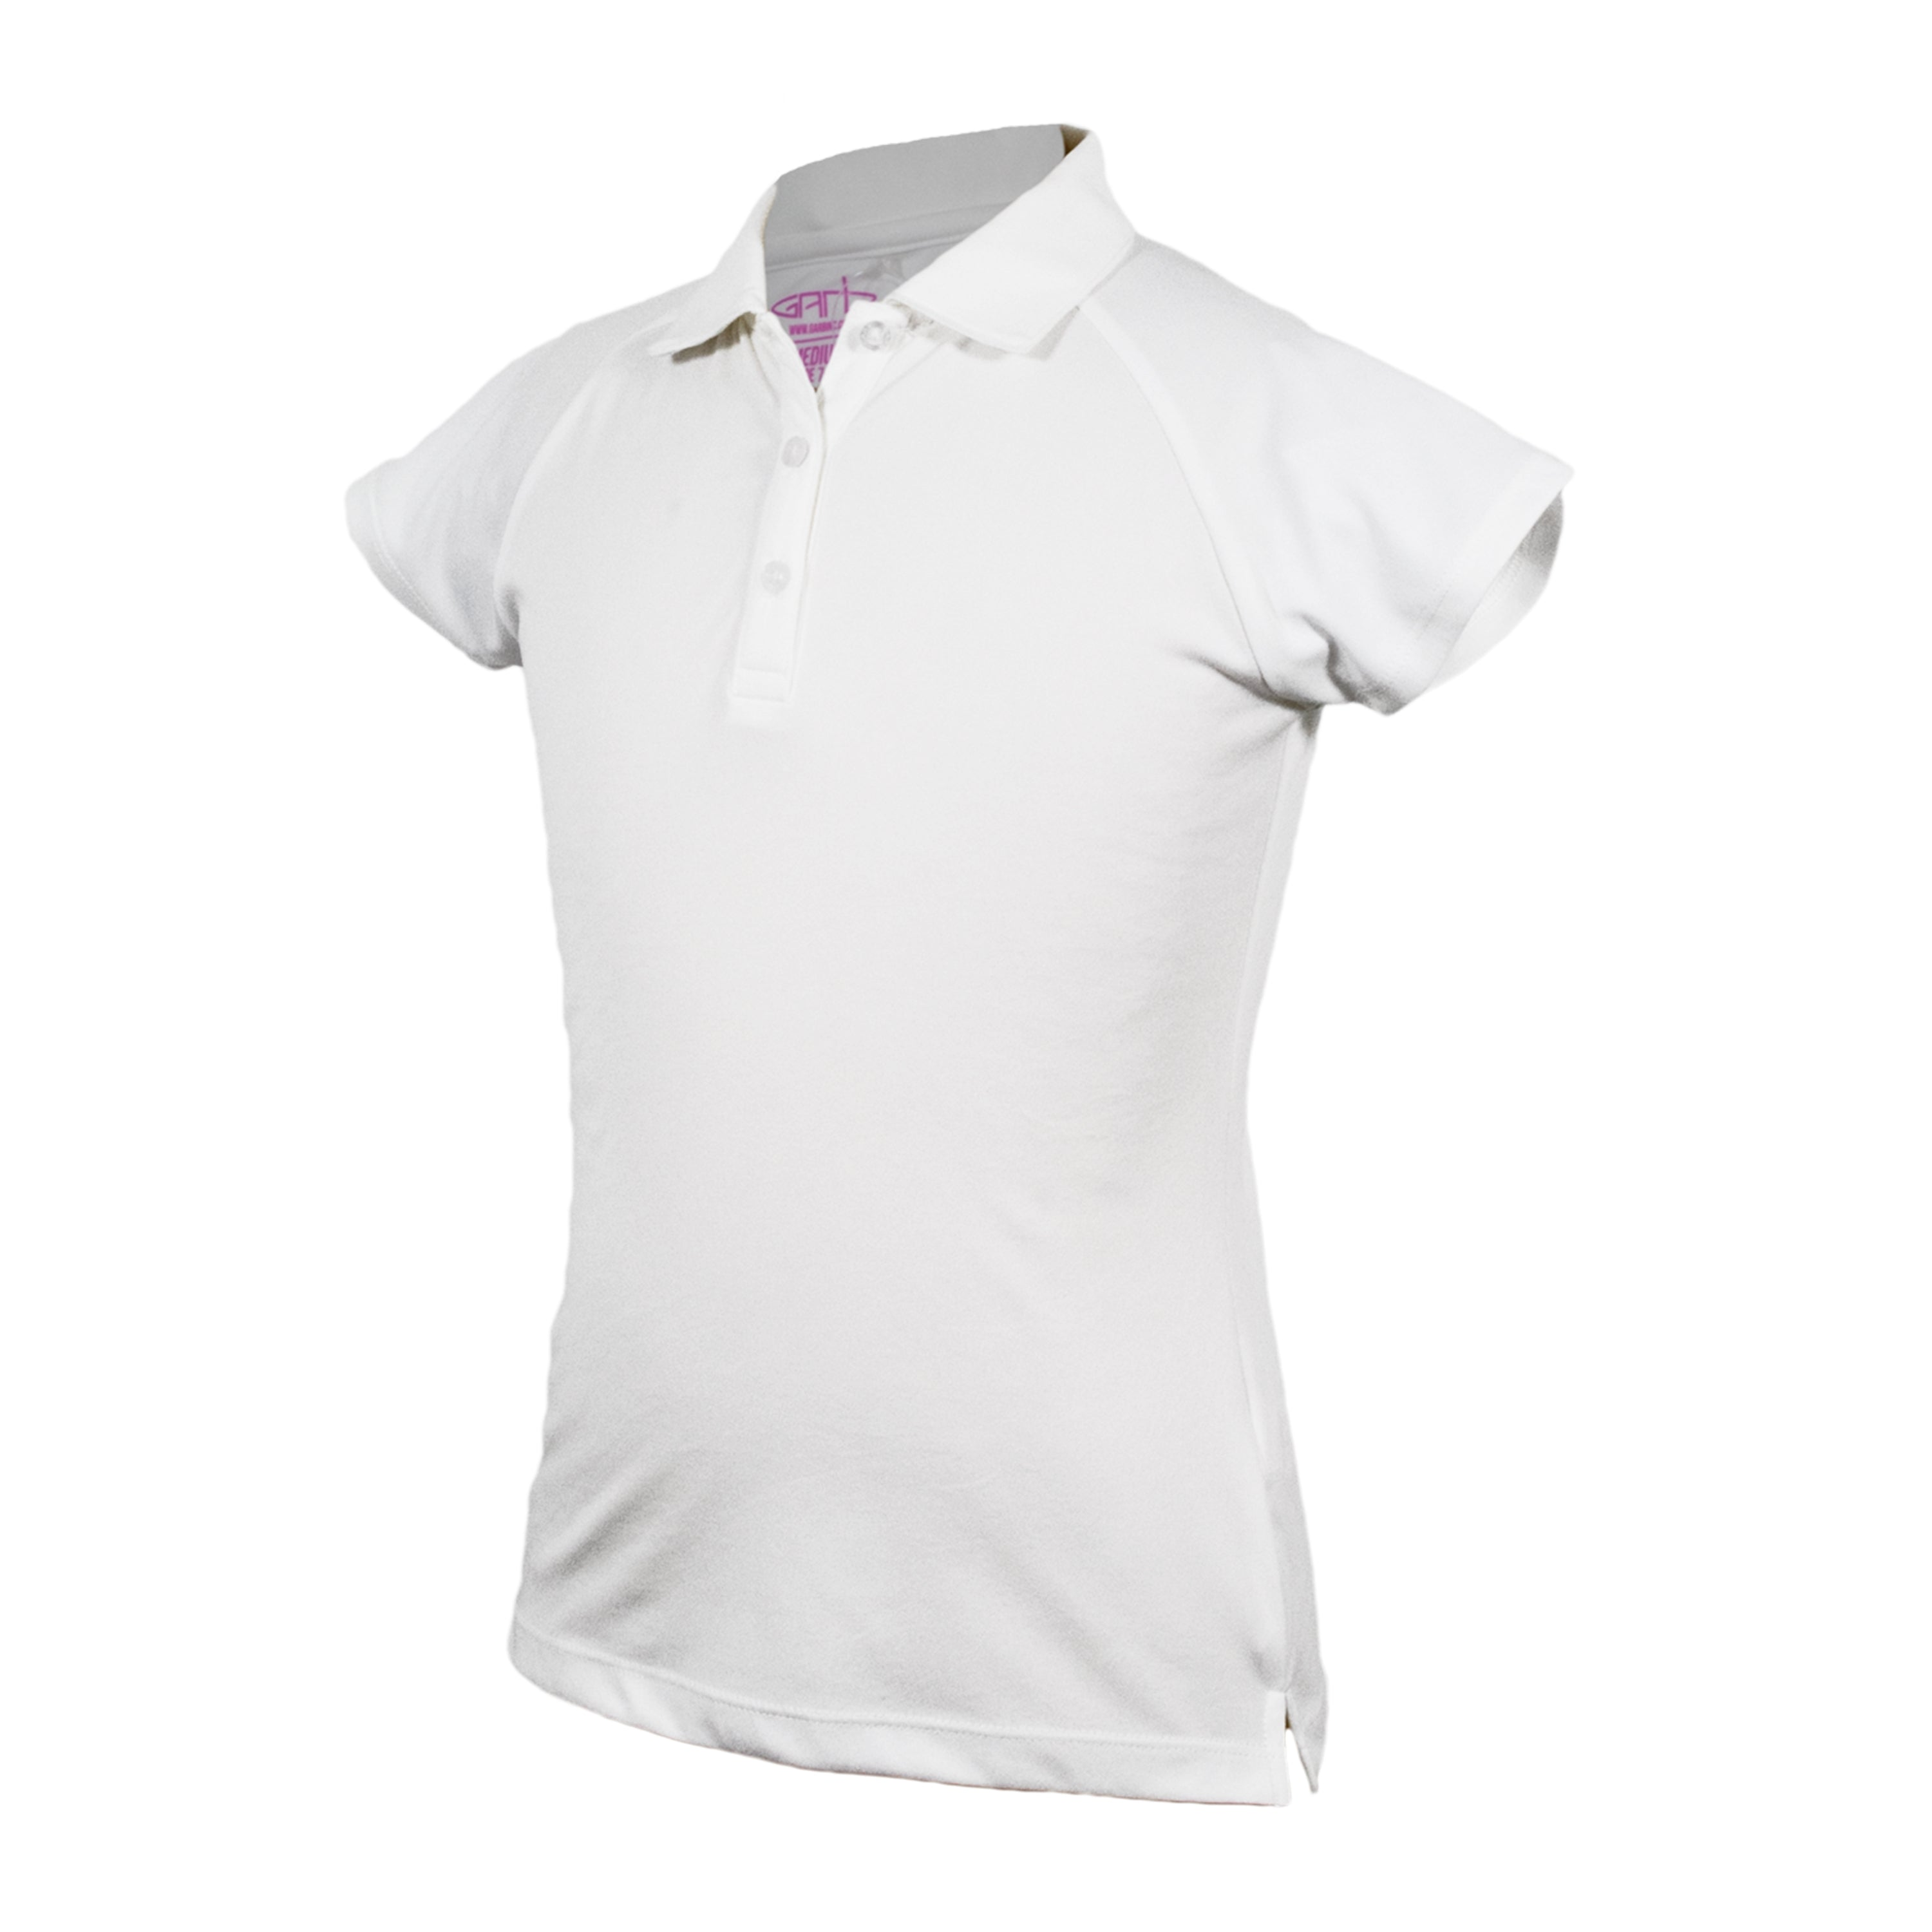 Monica - Girl's Youth Solid Polo